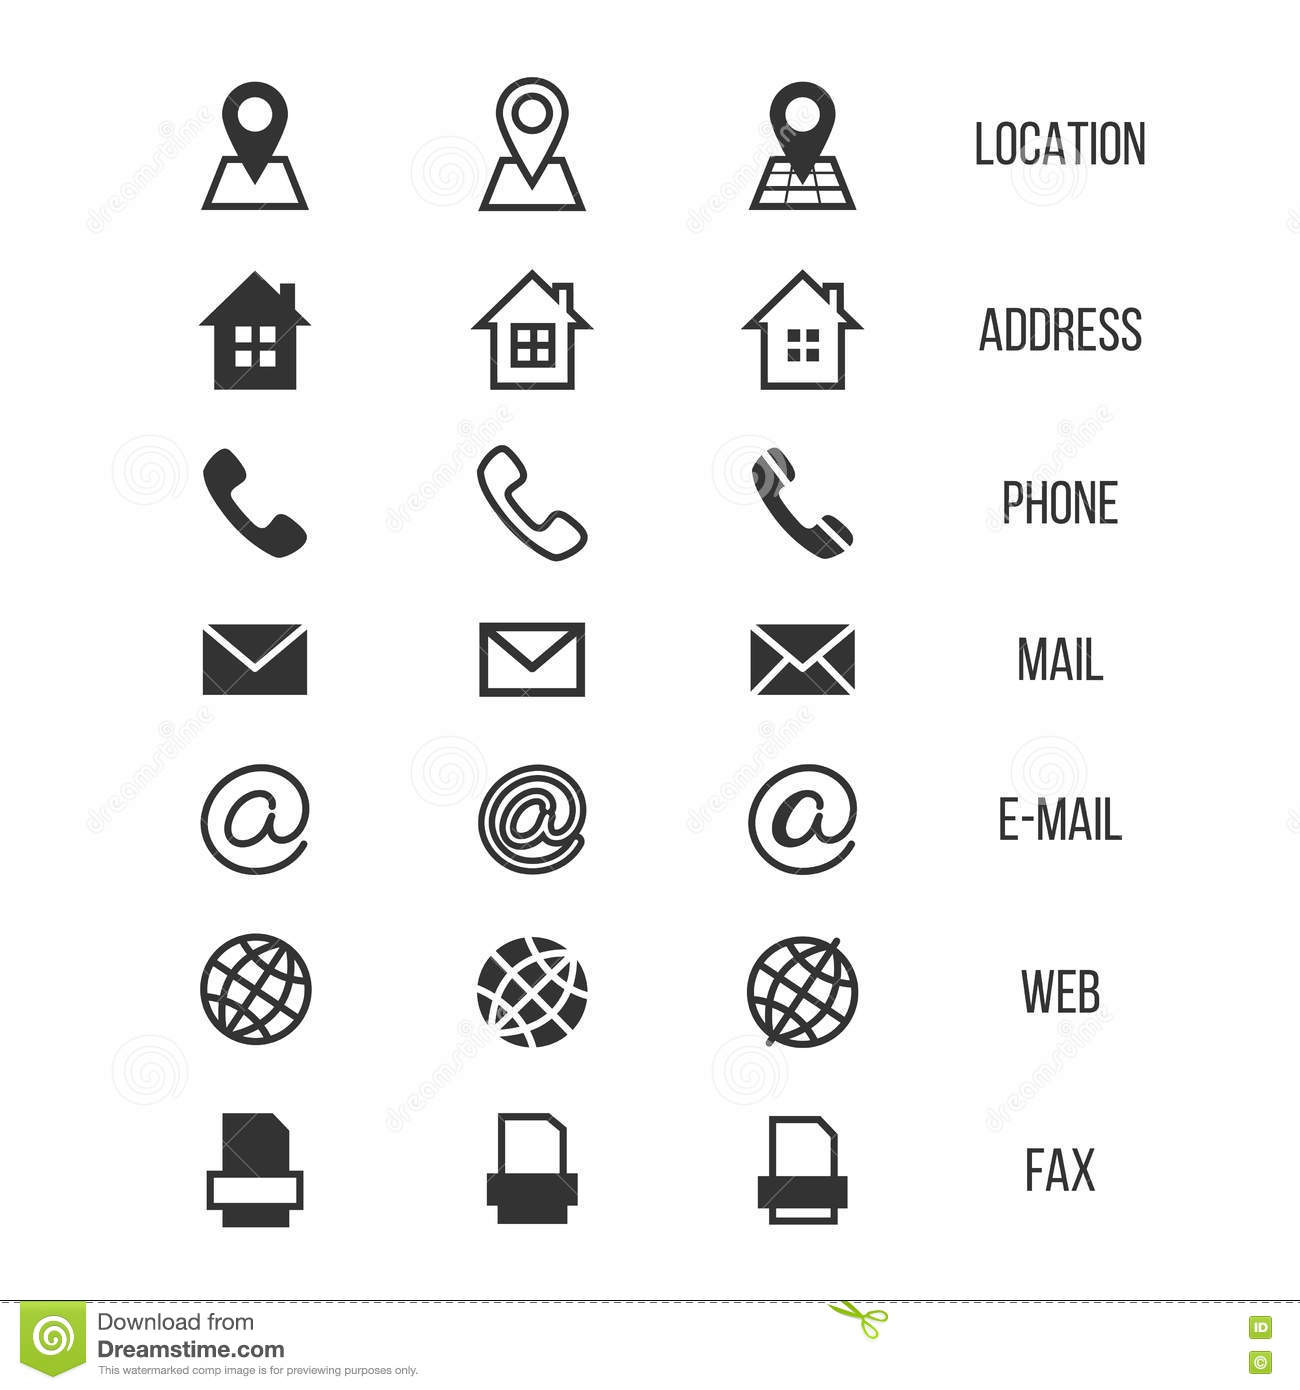 Business Card Vector Icons Home Phone Address